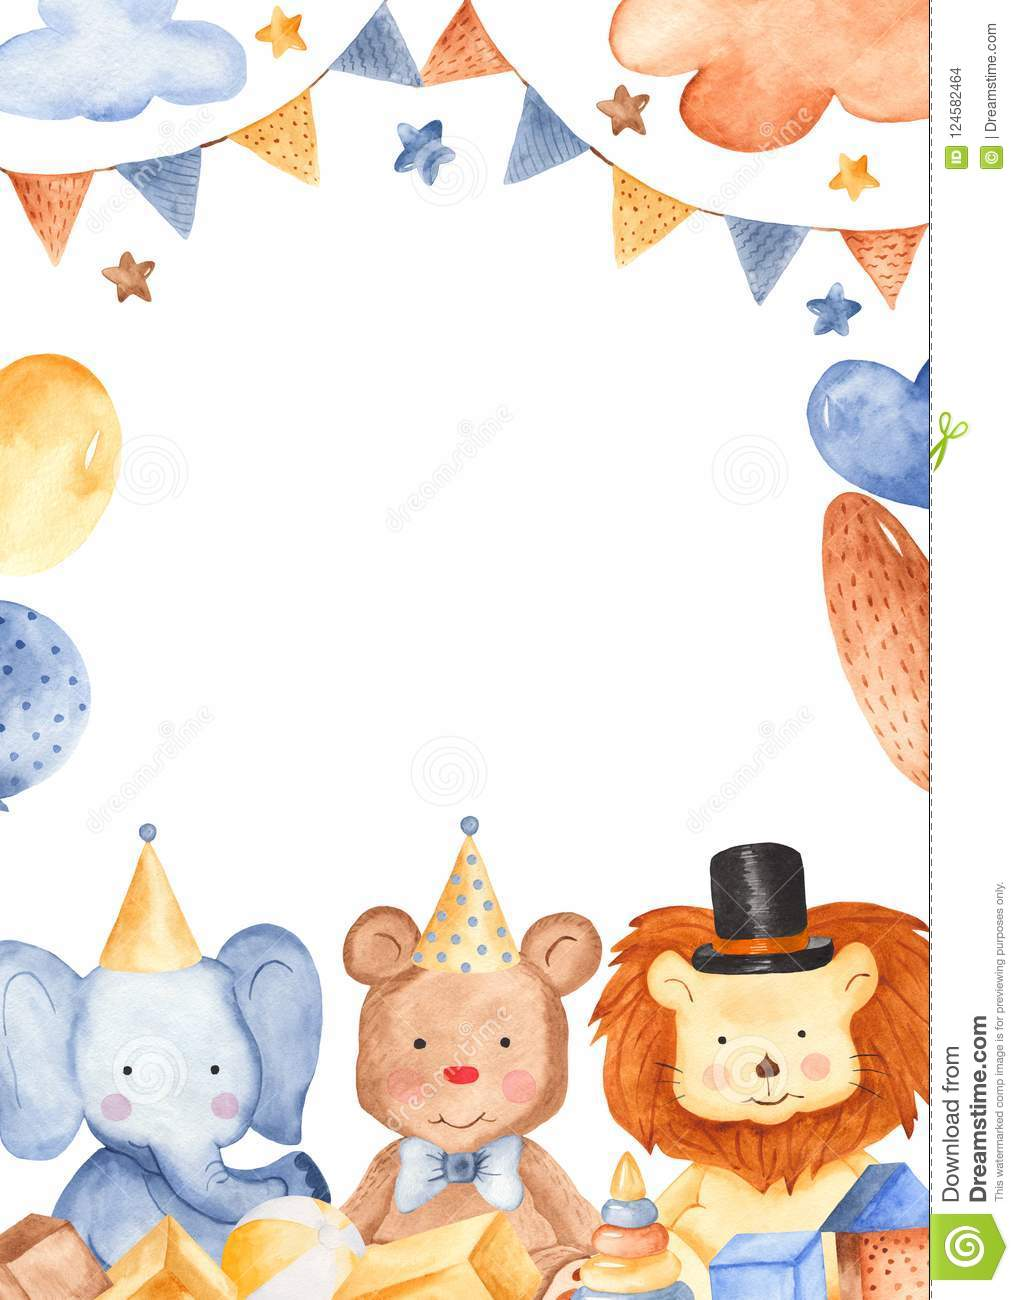 Watercolor Card With Cute Animals. Stock Illustration - Illustration ...